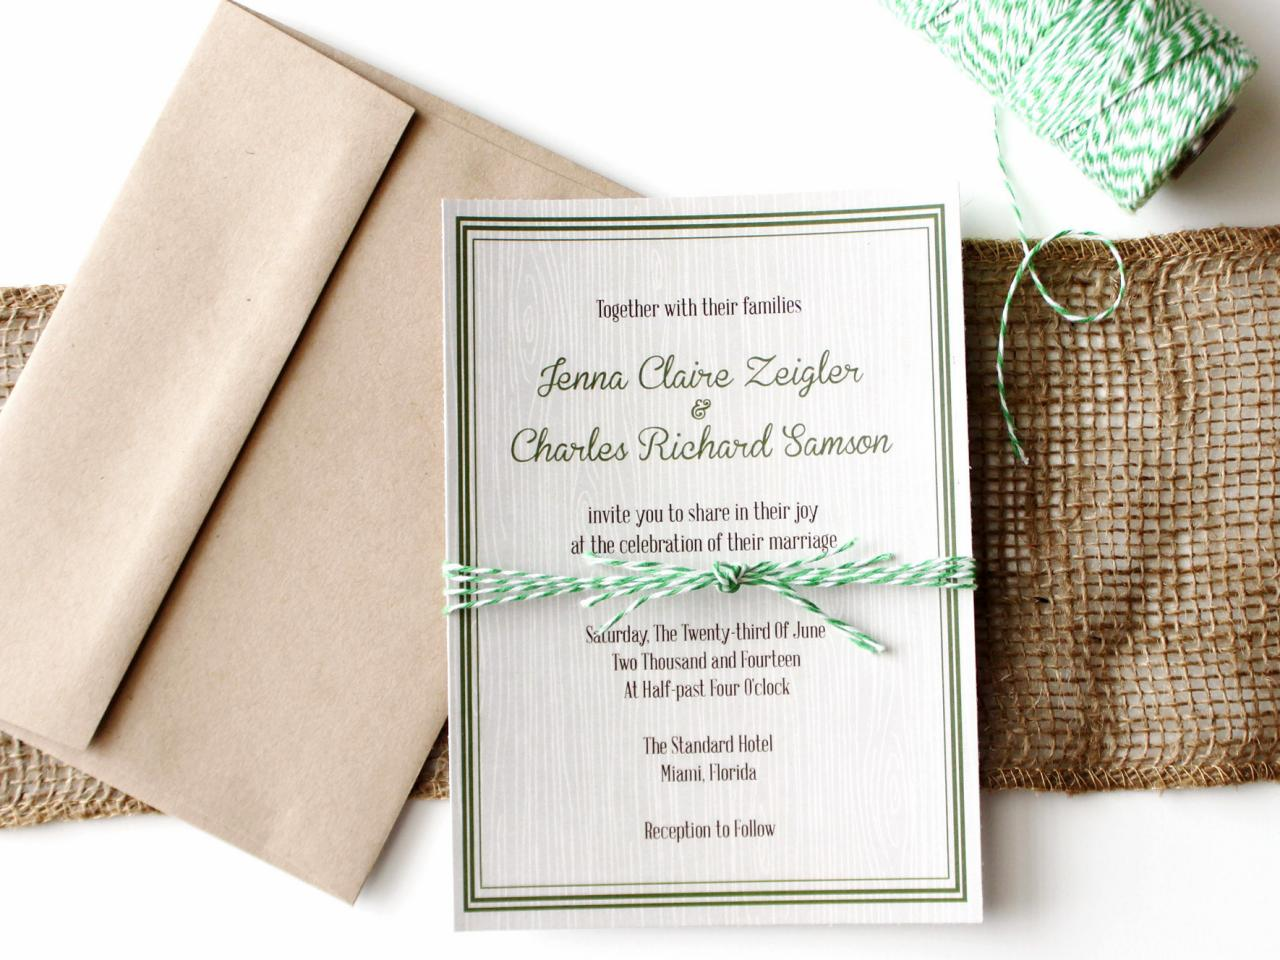 DIY Rustic Wedding Decorations DIY Network Blog Made Remade – How to Make Rustic Wedding Invitations